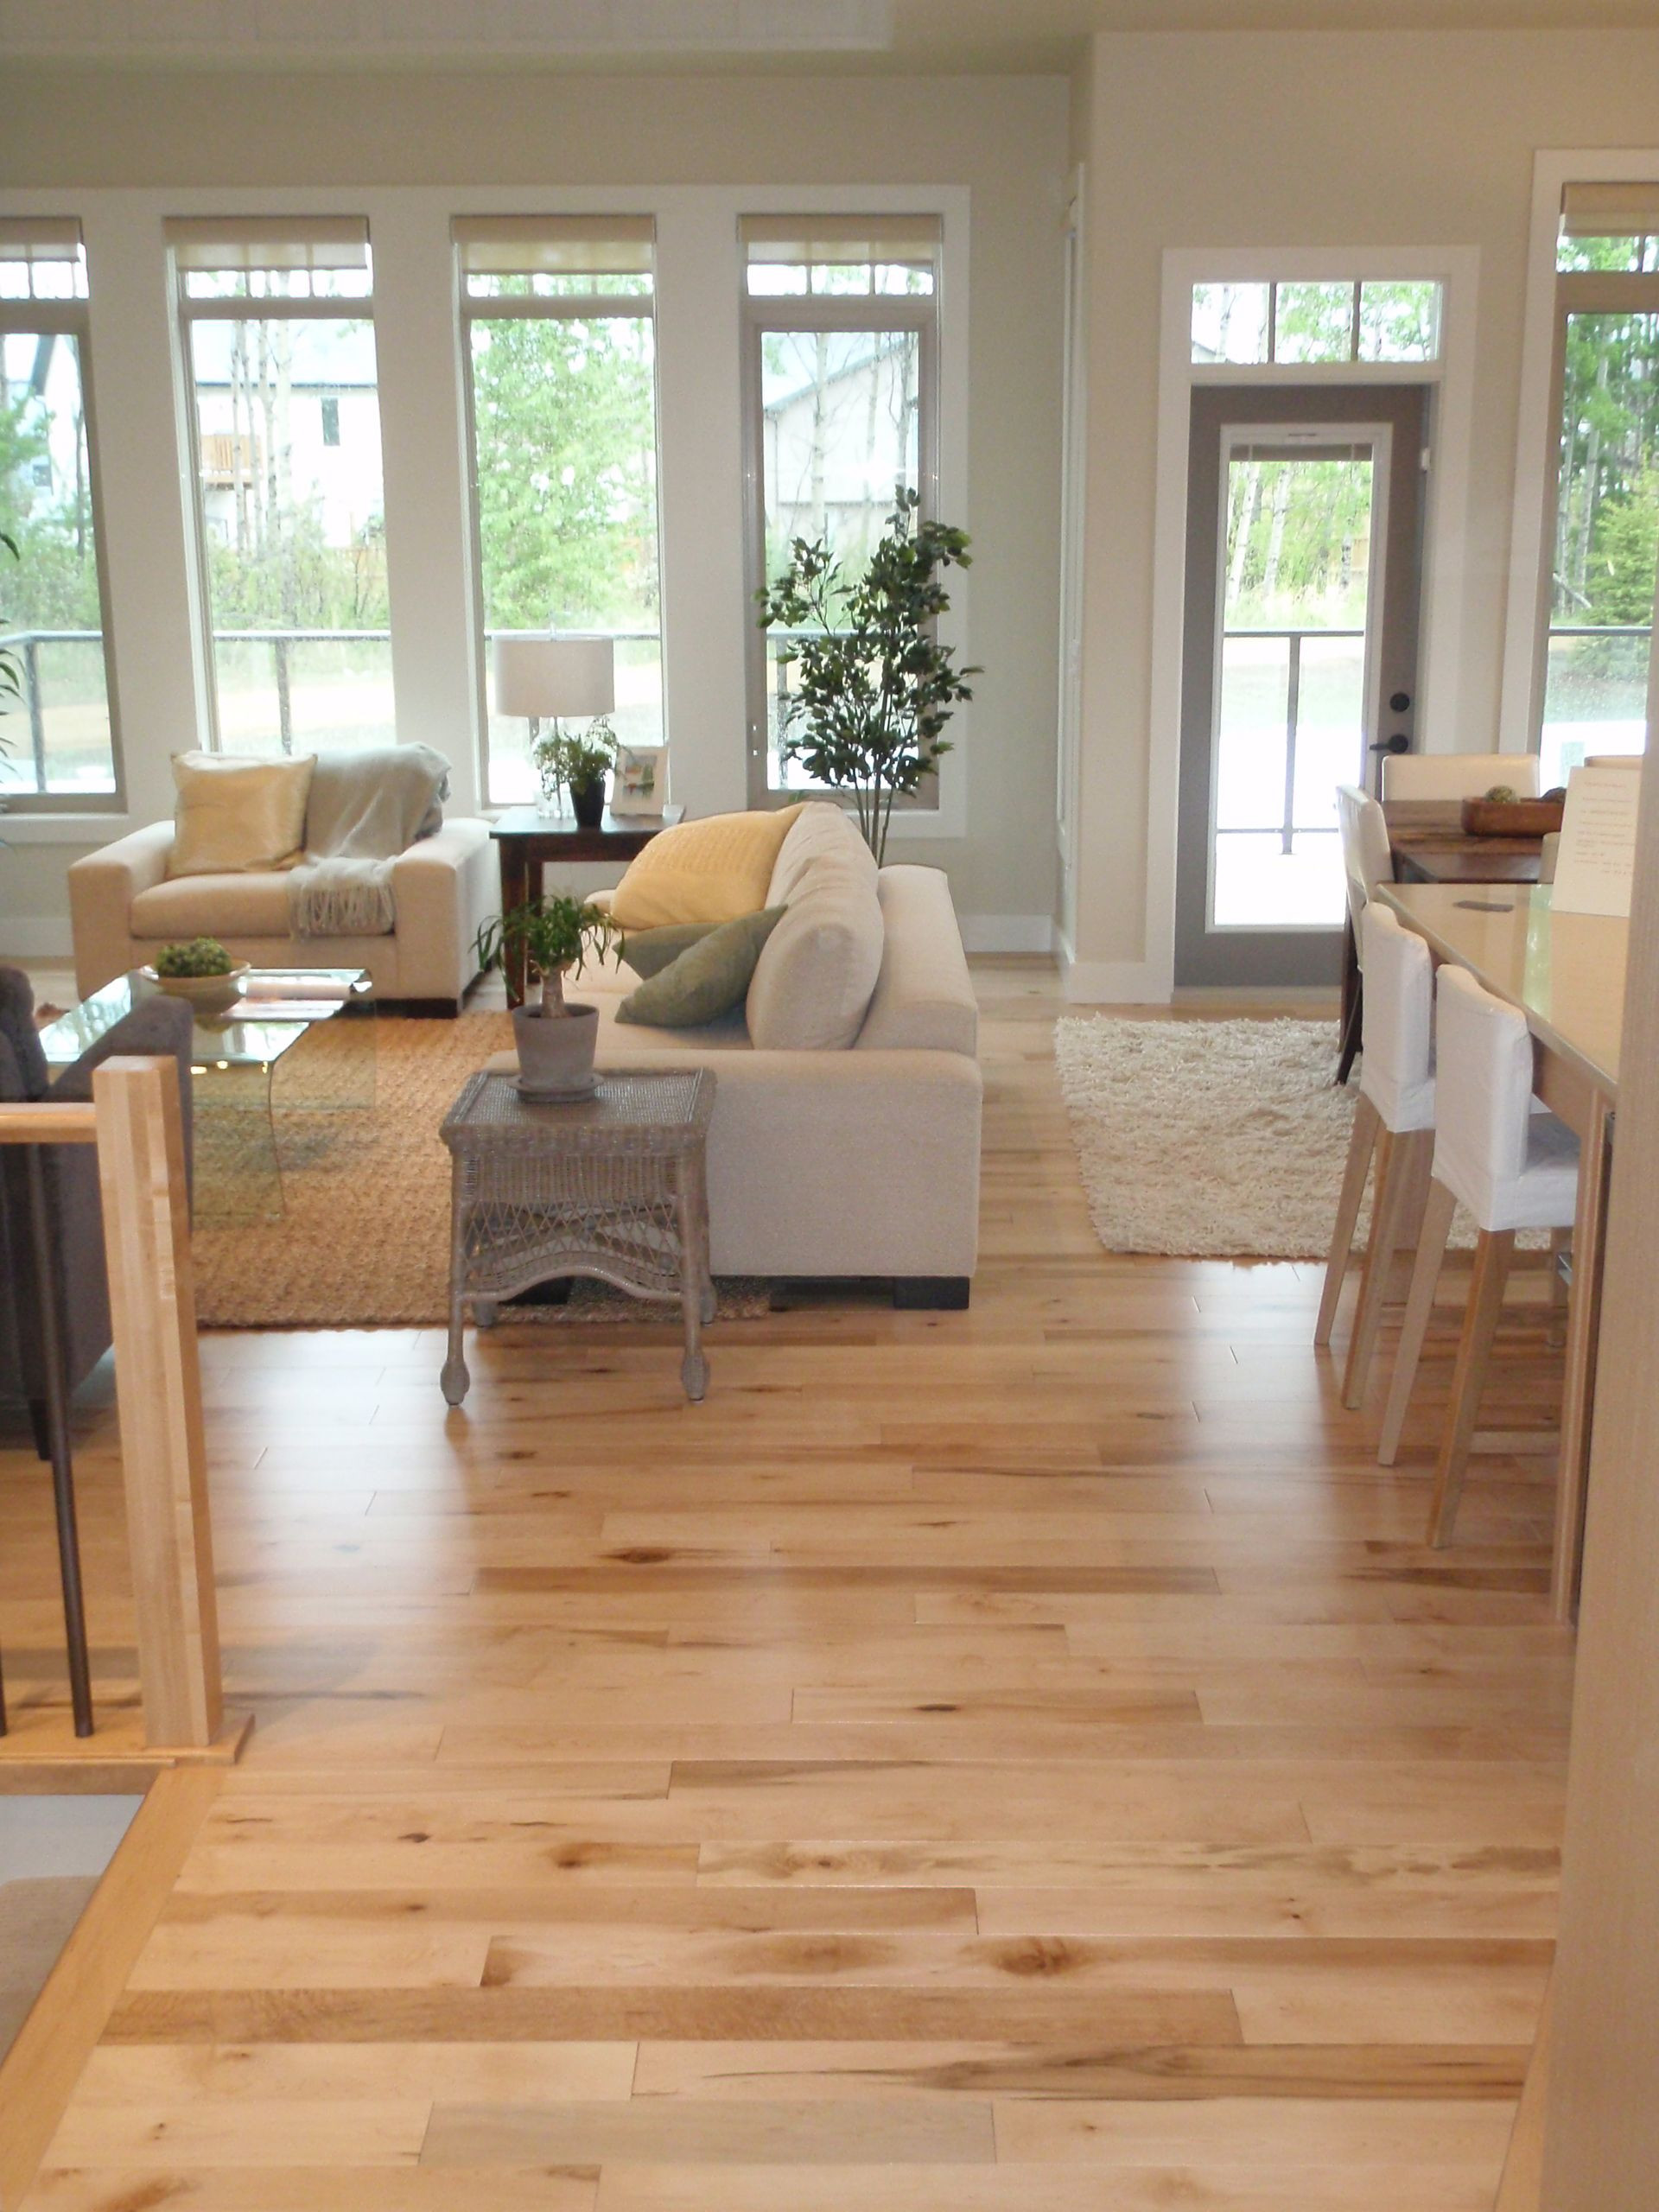 average cost per square foot to refinish hardwood floors of cost per square foot to refinish hardwood floors cork flooring in an in cost per square foot to refinish hardwood floors hardwood floors